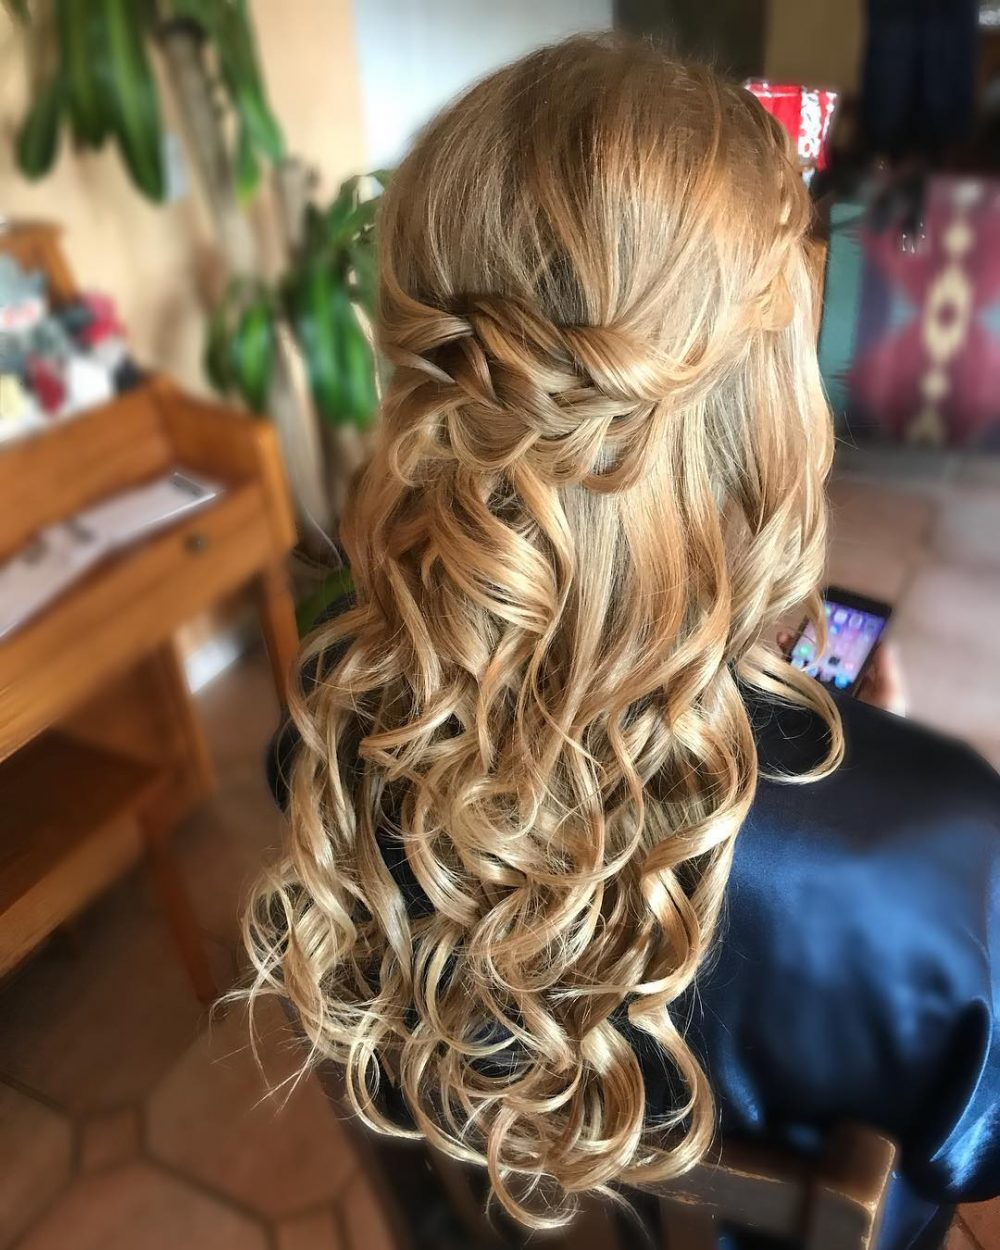 Wedding Hairstyles Guests Long Hair: 27 Gorgeous Wedding Hairstyles For Long Hair In 2019